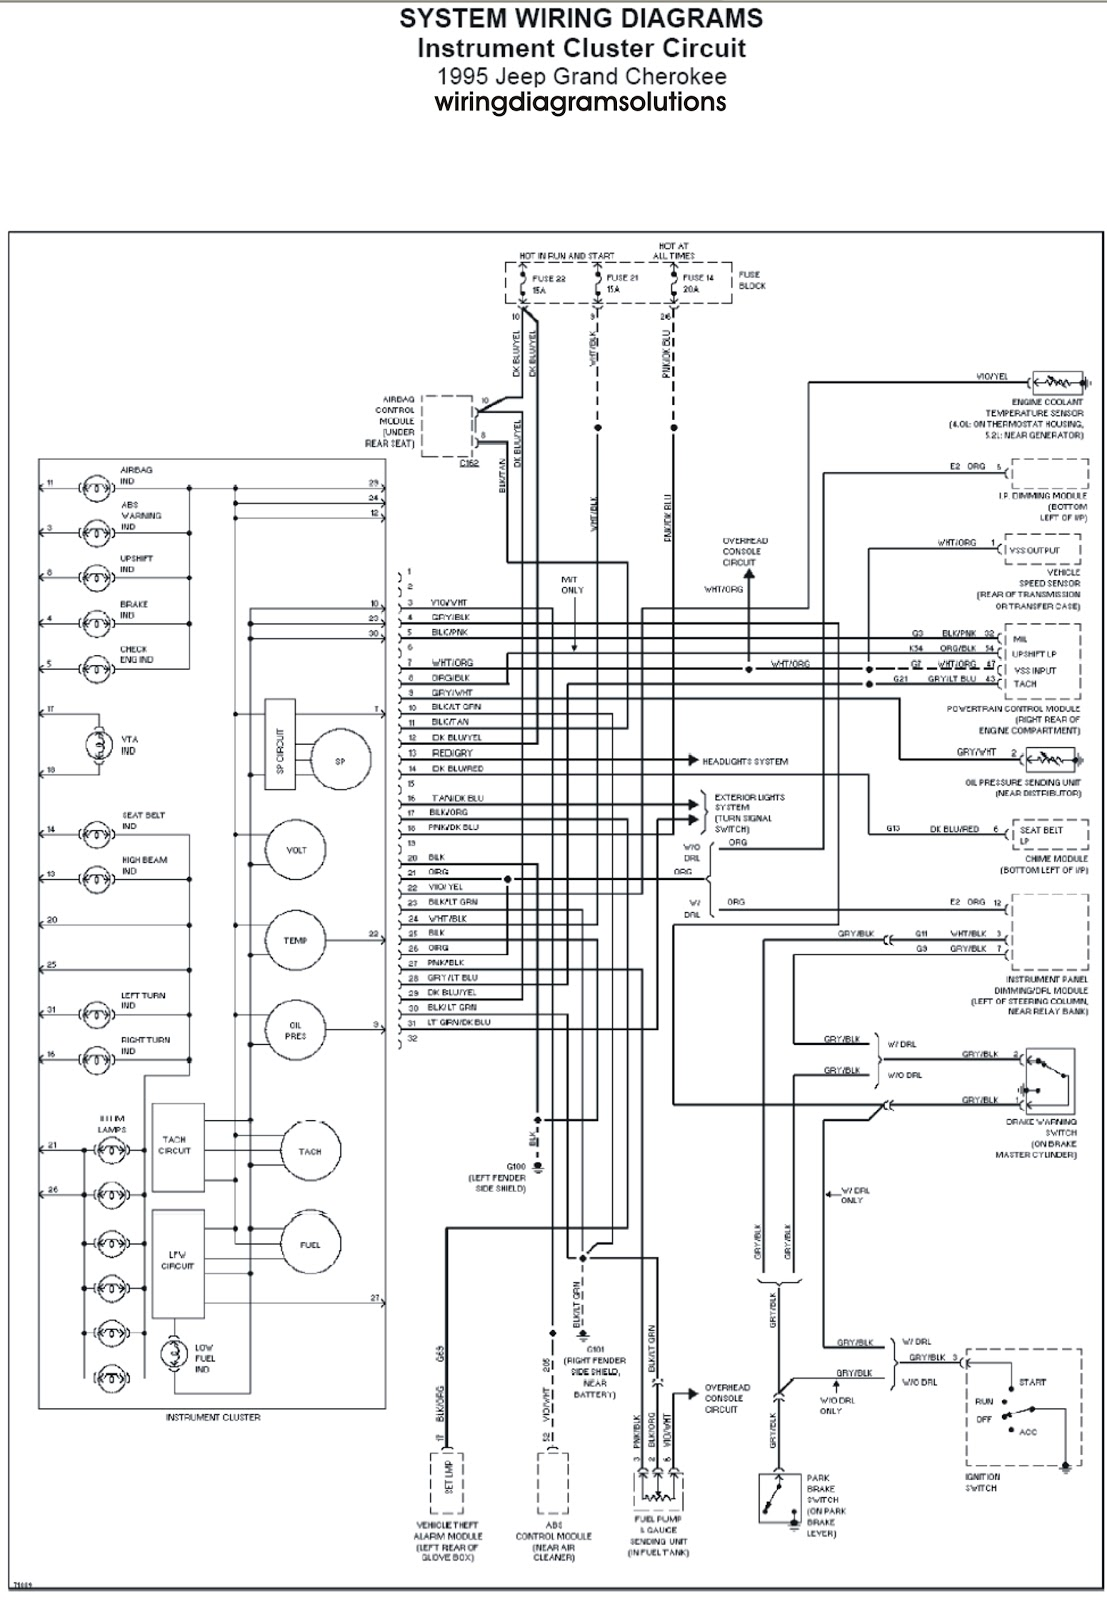 [DIAGRAM_5LK]  2002 Grand Cherokee Radio Wiring Chart - 2000 Passat Engine Diagram for Wiring  Diagram Schematics | 1997 Jeep Grand Cherokee Starter Wiring Harness |  | Wiring Diagram Schematics